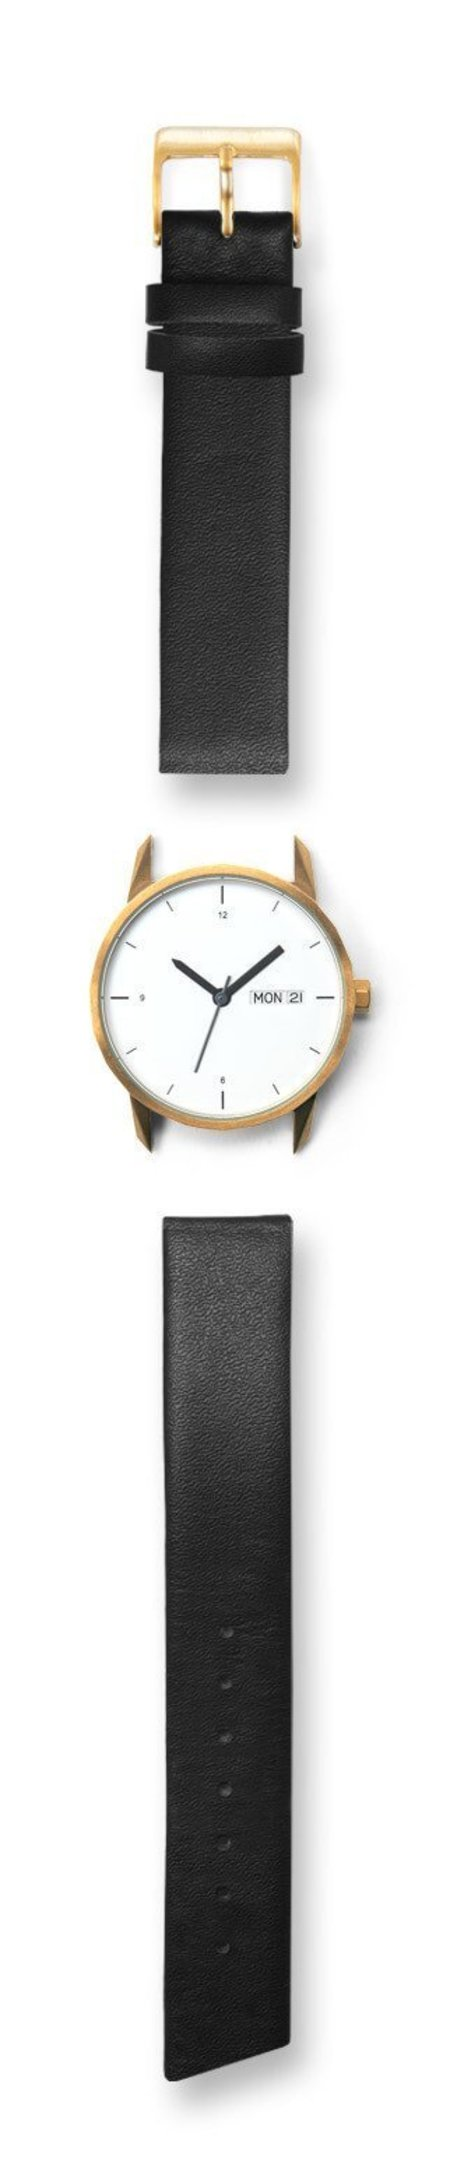 Unisex Tinker Watches 34mm Gold Watch Black Italian Leather Strap